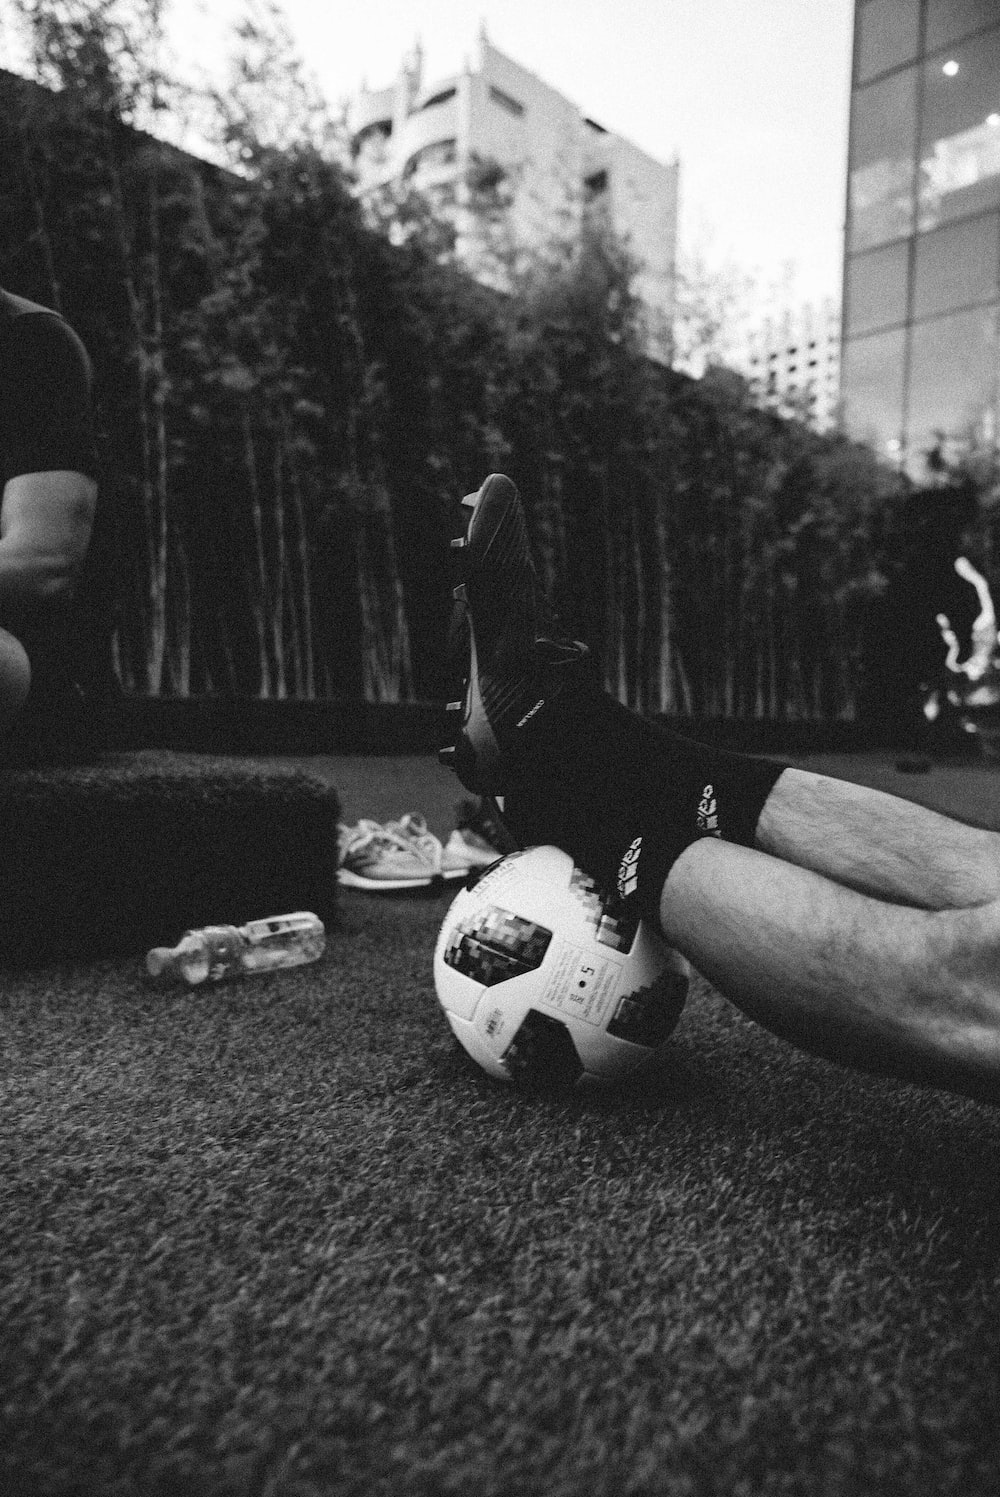 Football boots pictures download free images on unsplash gray scale photo of a persons feet on a football thecheapjerseys Gallery